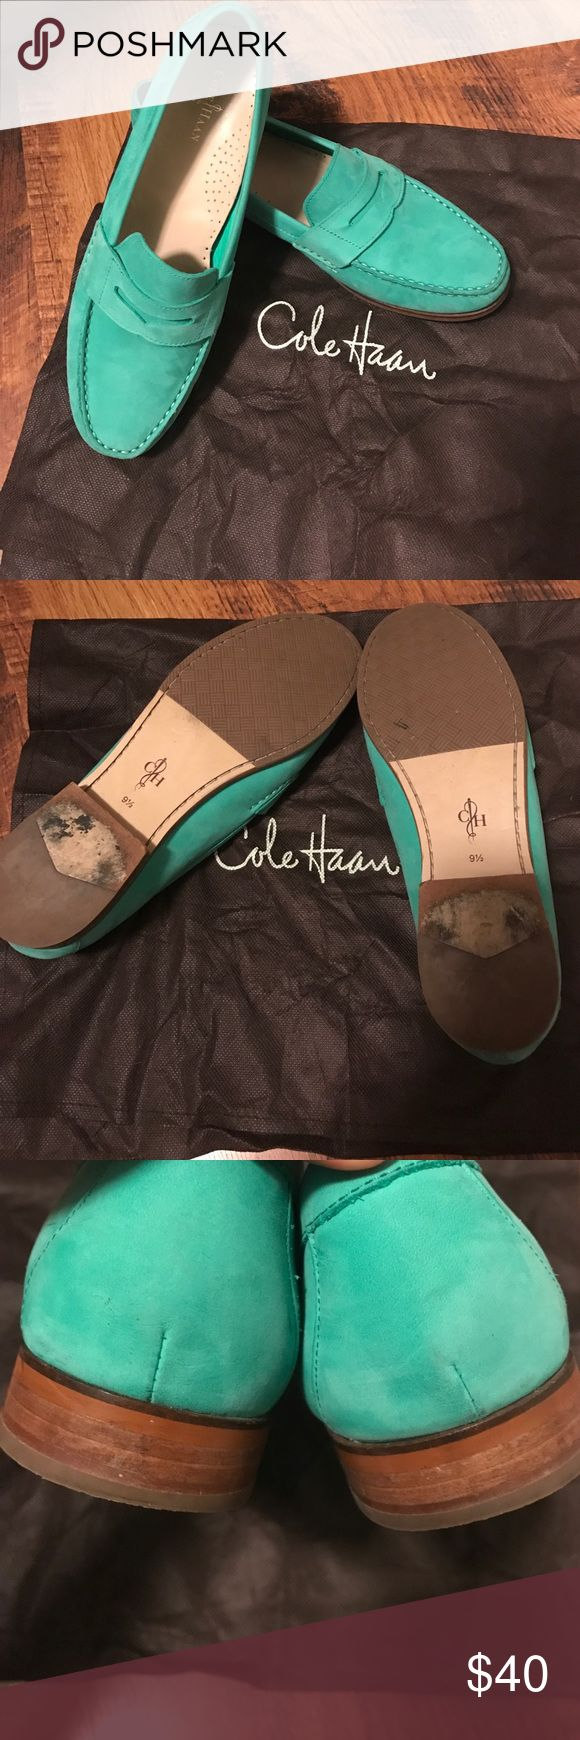 Cole Haan aqua/mint green suede loafers. 9.5M Aqua minty green suede loafers. Women's size 9.5M. Like new. Only sign of any wear at all is on the bottom. See pictures. I forgot I even had these. They may have been worn once or twice. Purchased at Saks Fifth Ave. leather inside and out. Comes with original dust bag. No Box. I keep most of my shoes in their own individual clear plastic containers. Cole Haan Shoes Flats & Loafers